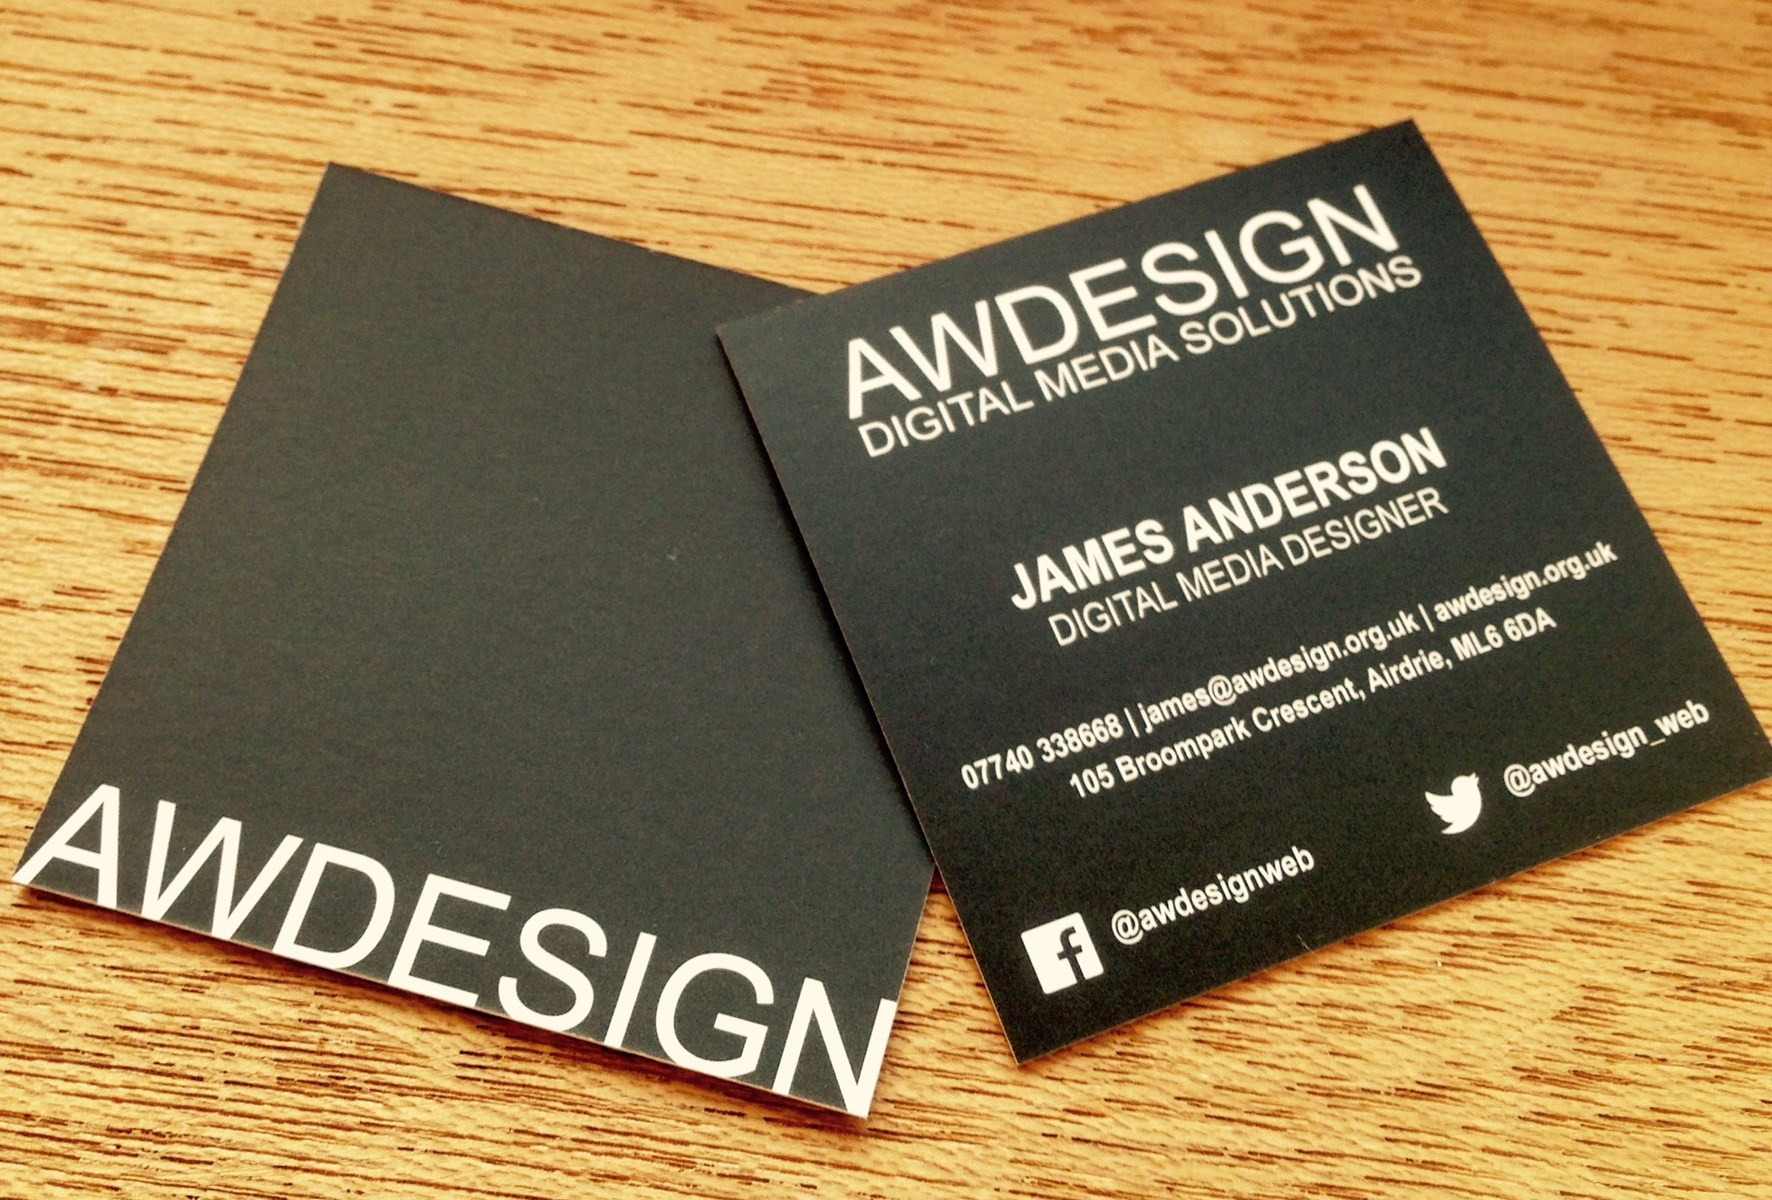 Awdesign business cards